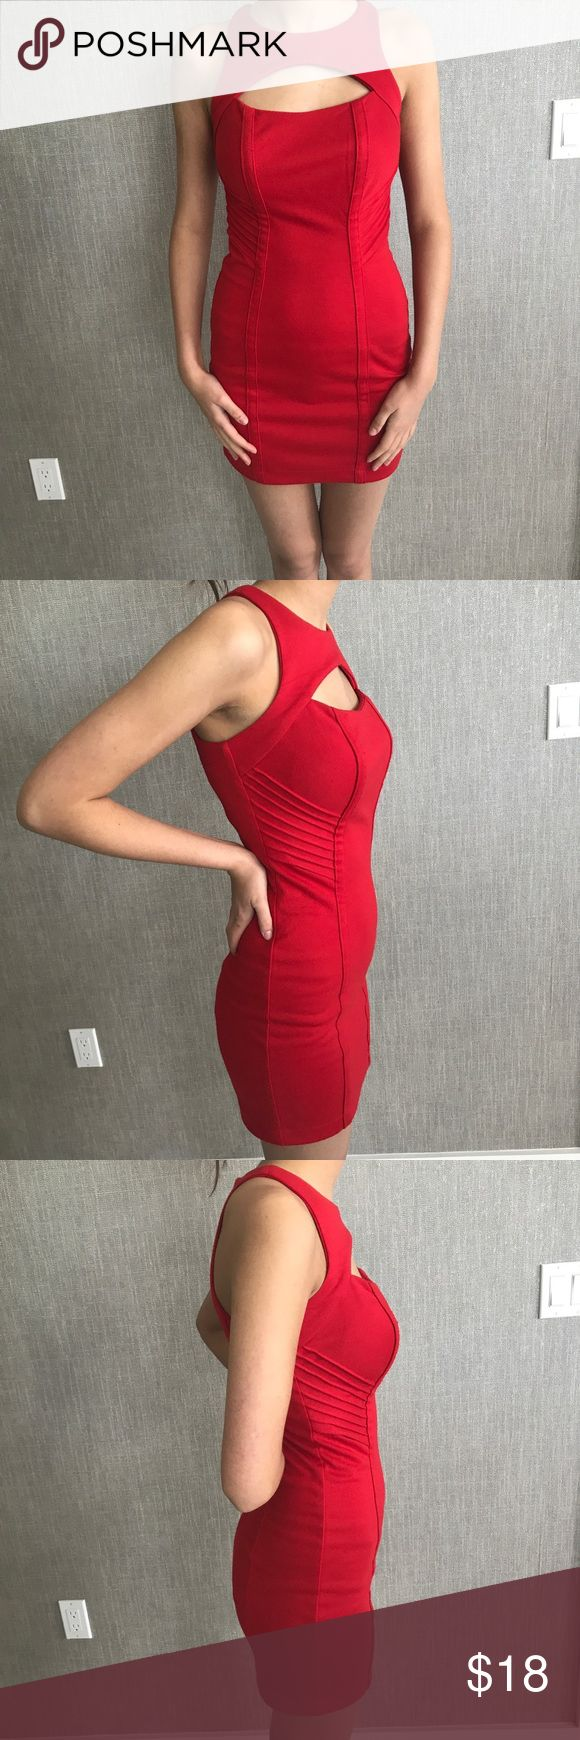 """{ Charlotte Russe } Red Peekaboo Scuba Knit Dress Showstopping scuba dress, very flattering.  95% polyester 5% spandex  Approximate measurements: Bust: 34"""" Waist: 26"""" Length: 33"""" Charlotte Russe Dresses Mini"""